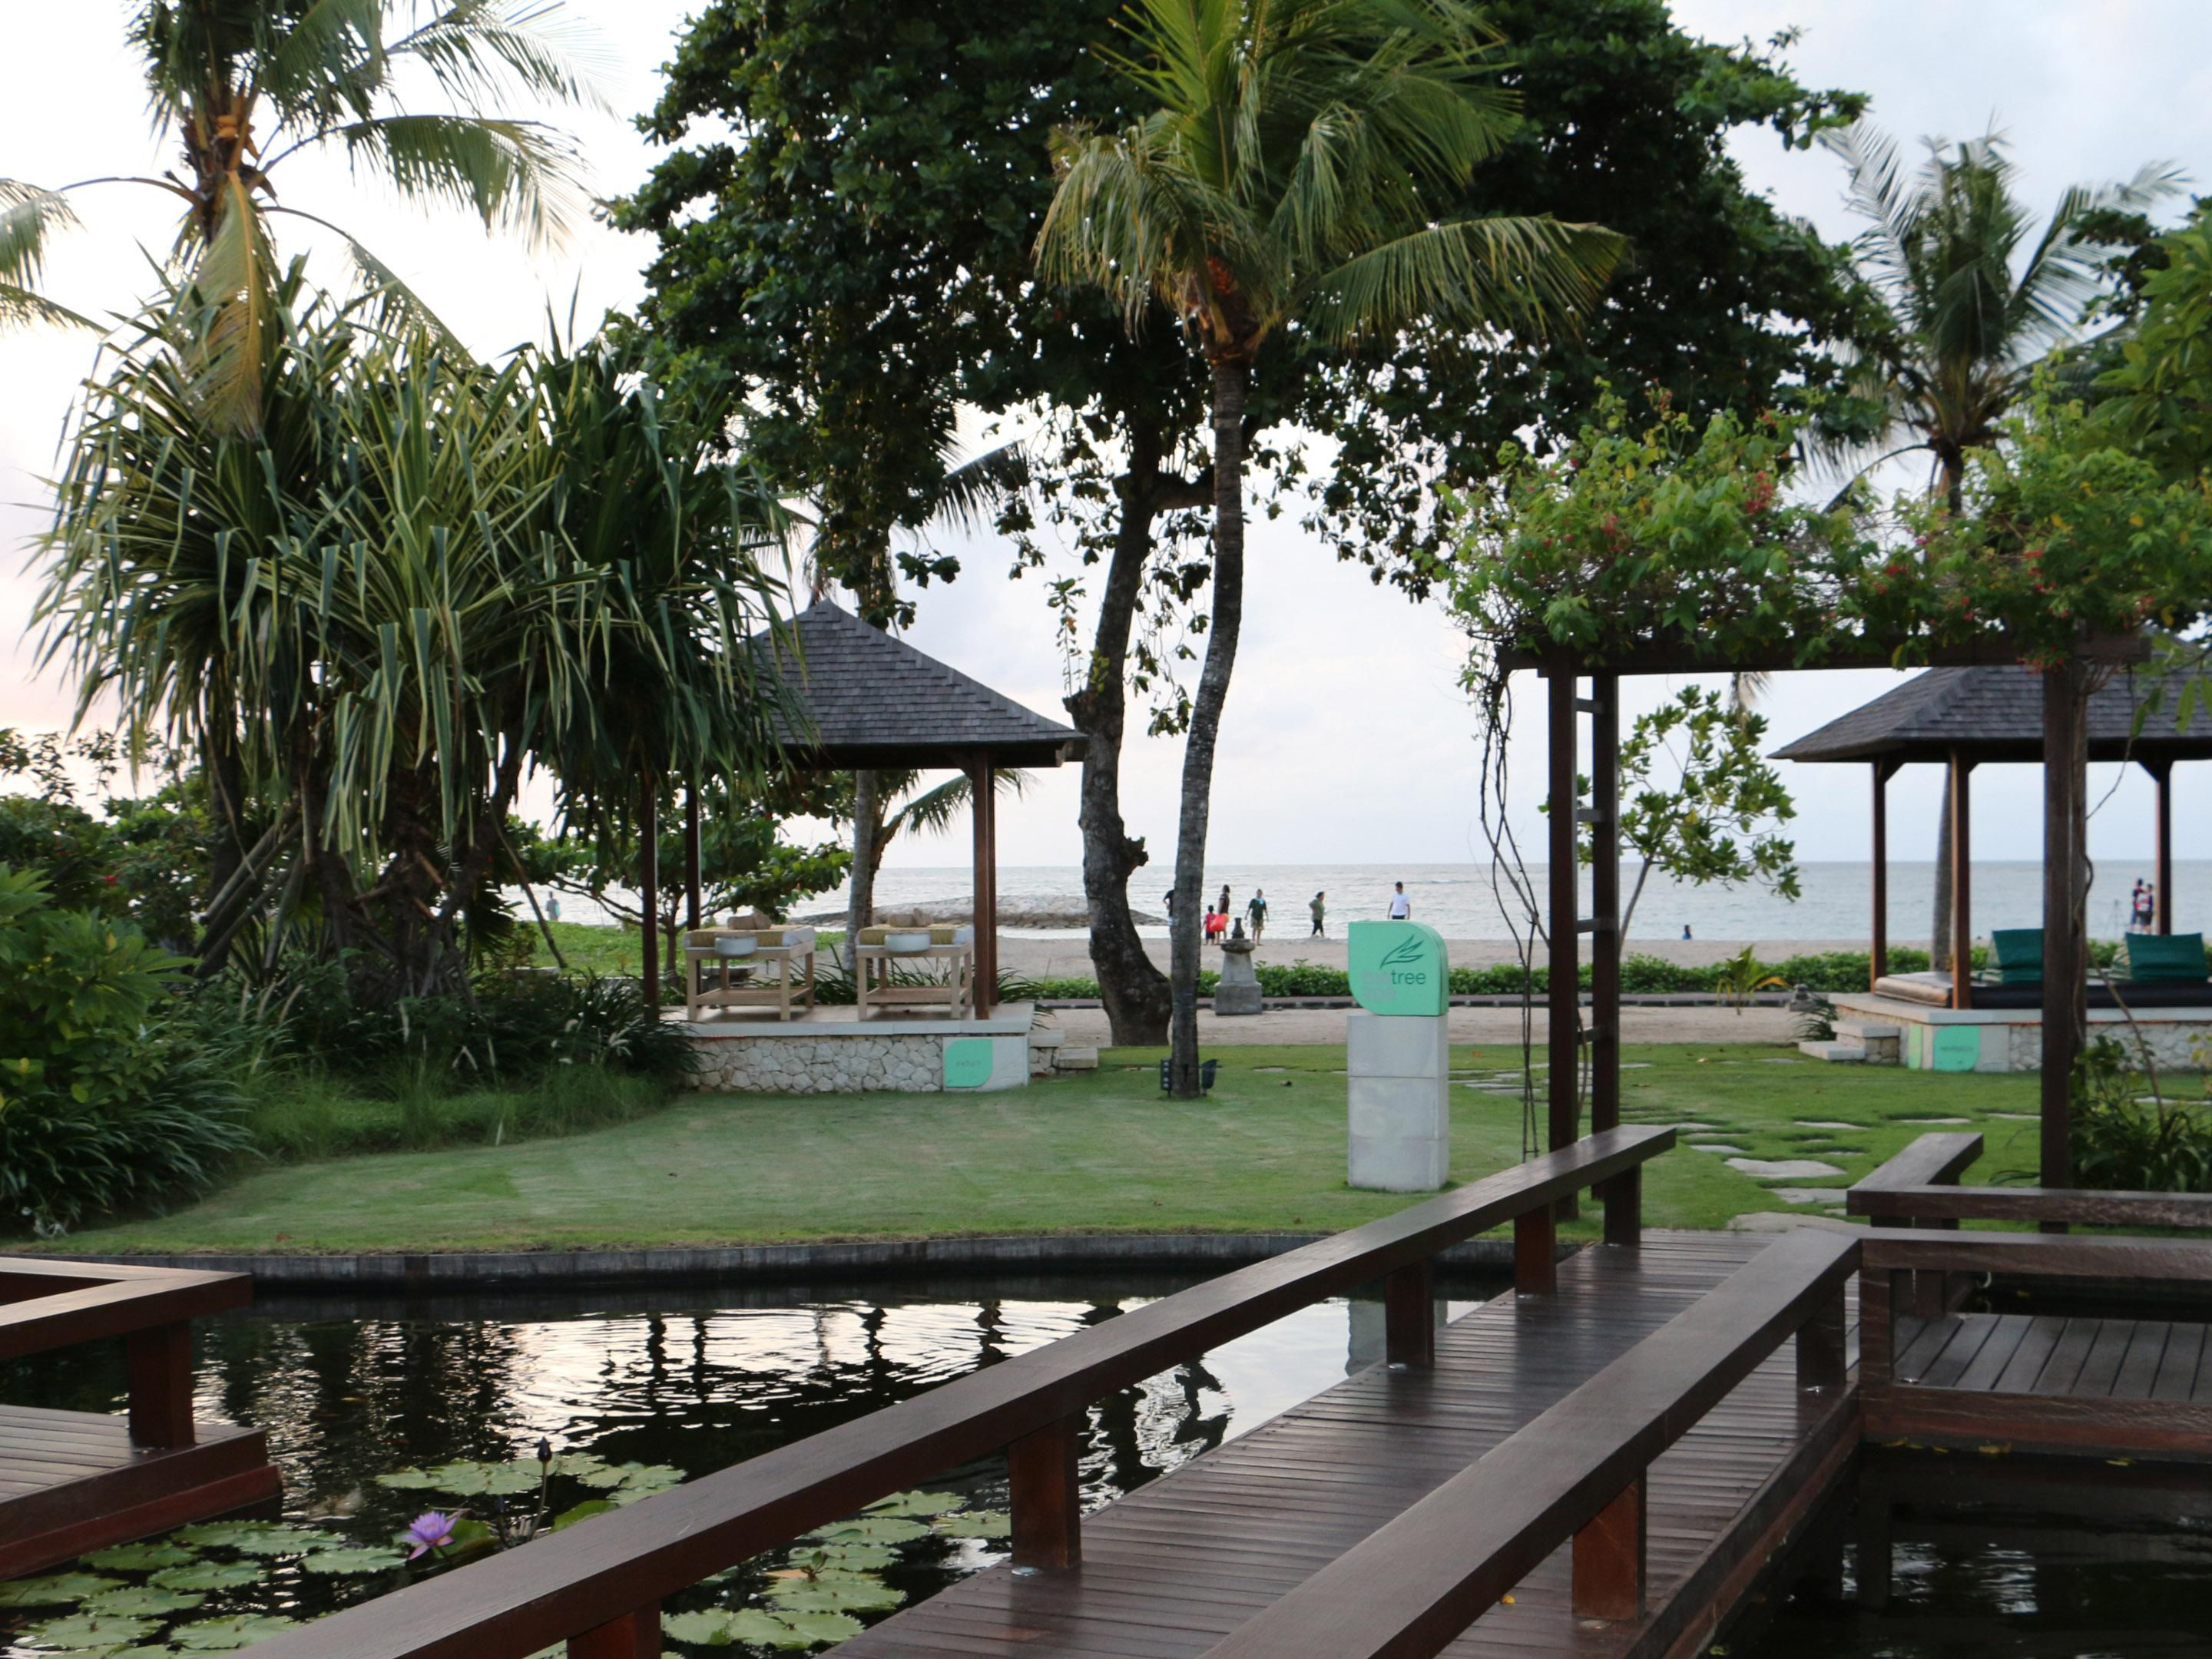 Scenery - Holiday Inn Resort® Baruna Bali